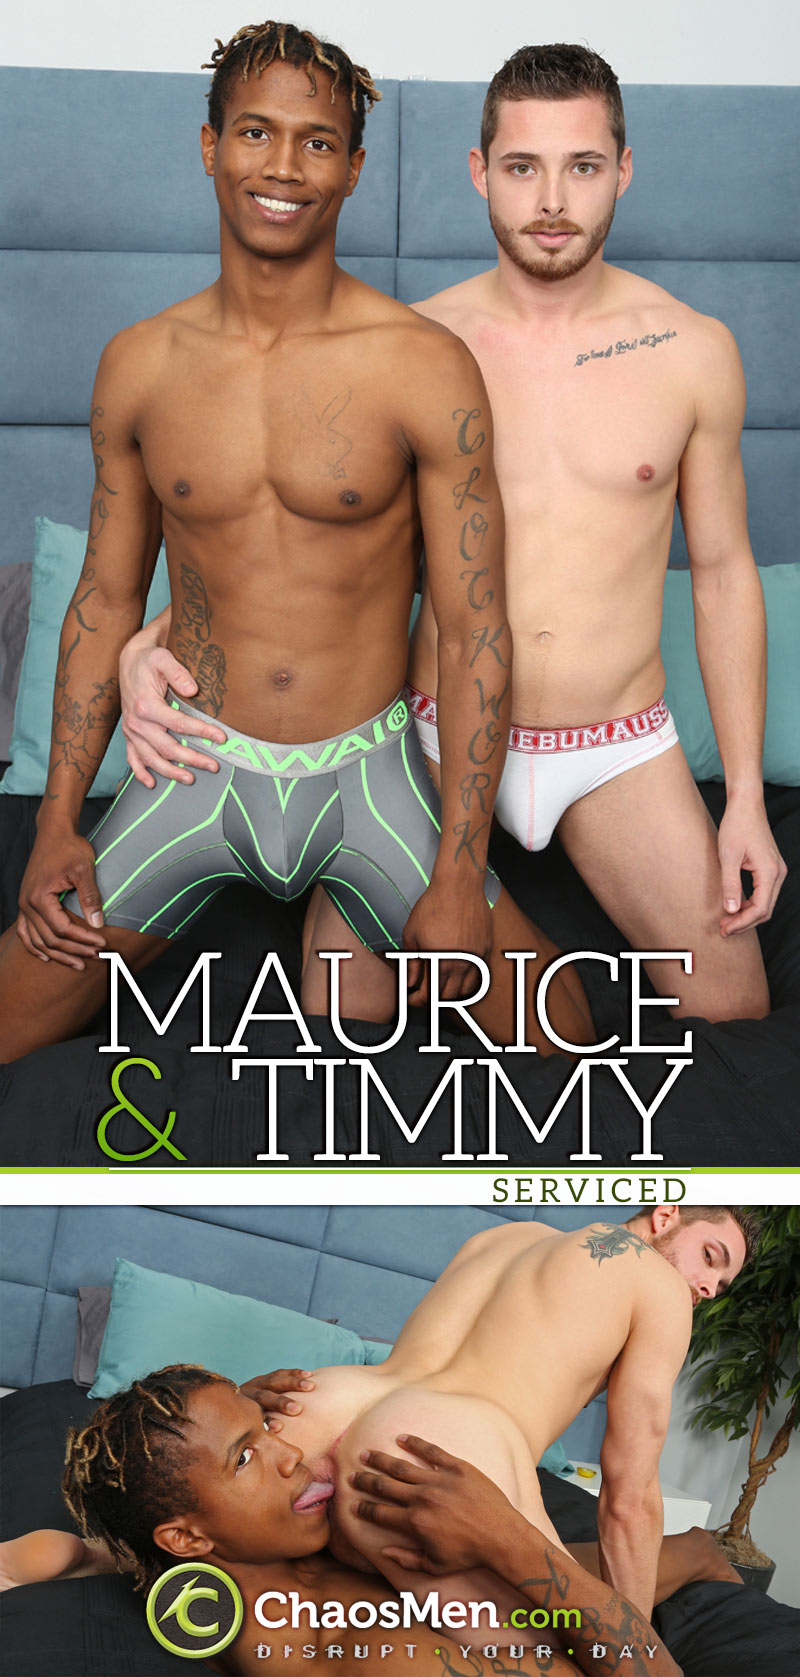 Maurice & Timmy (Serviced) at ChaosMen